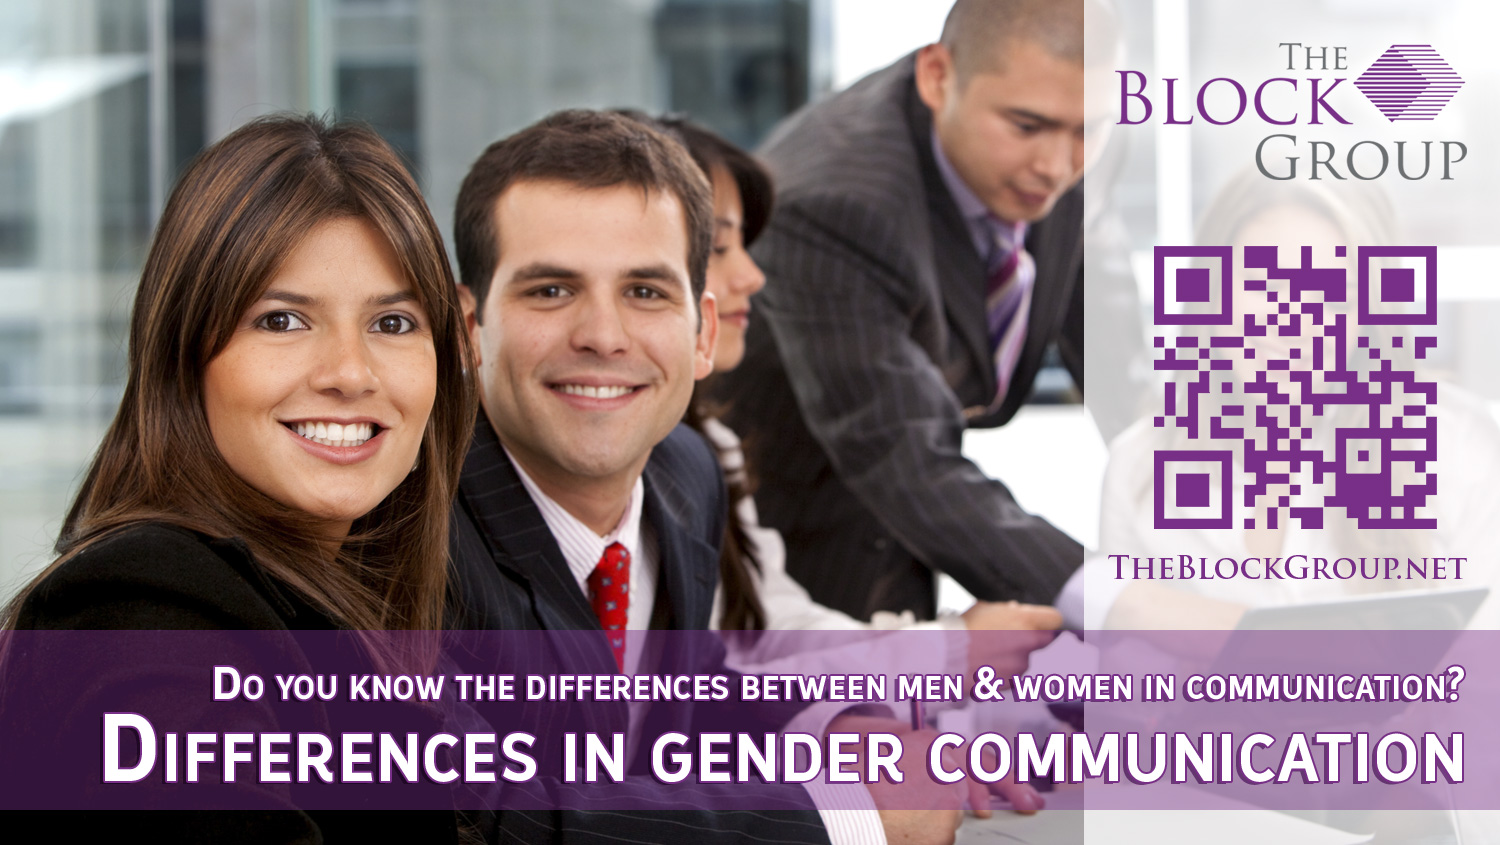 011-Differences-in-gender-communication